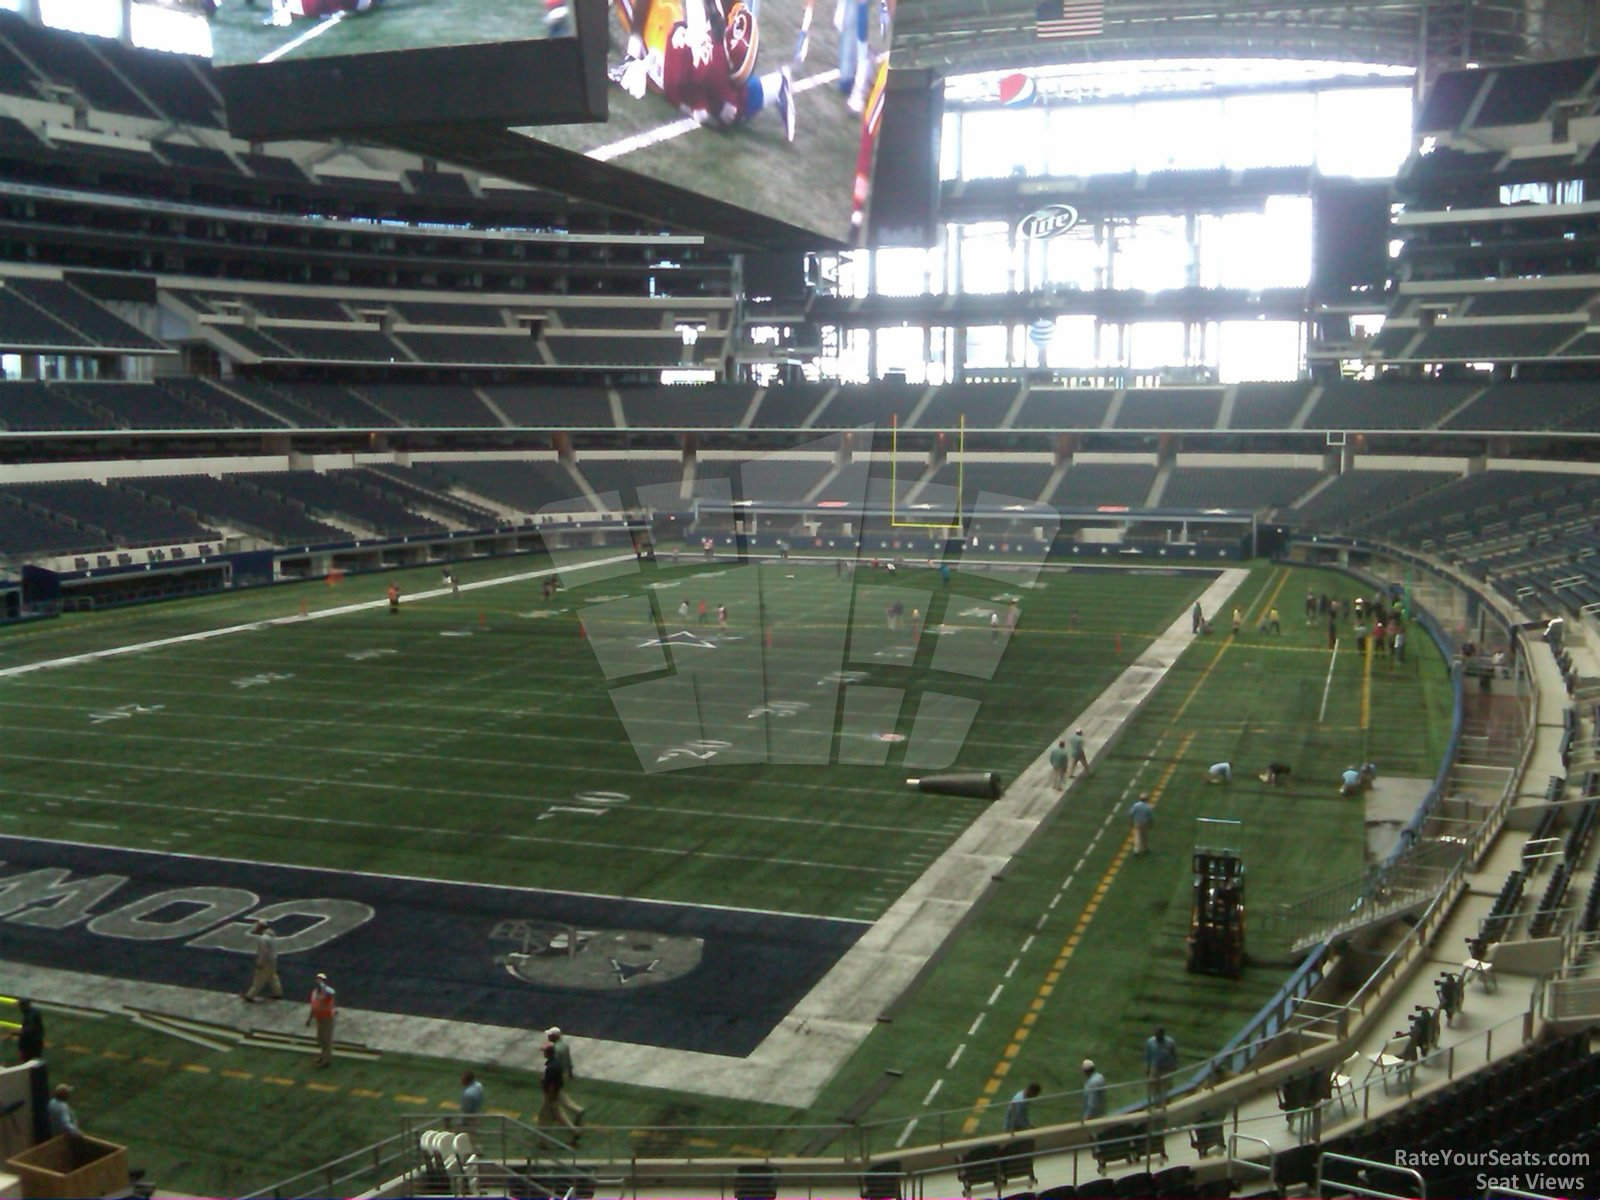 Dallas Cowboys Seat View for AT&T Stadium Section 244, Row 2, Seat 10